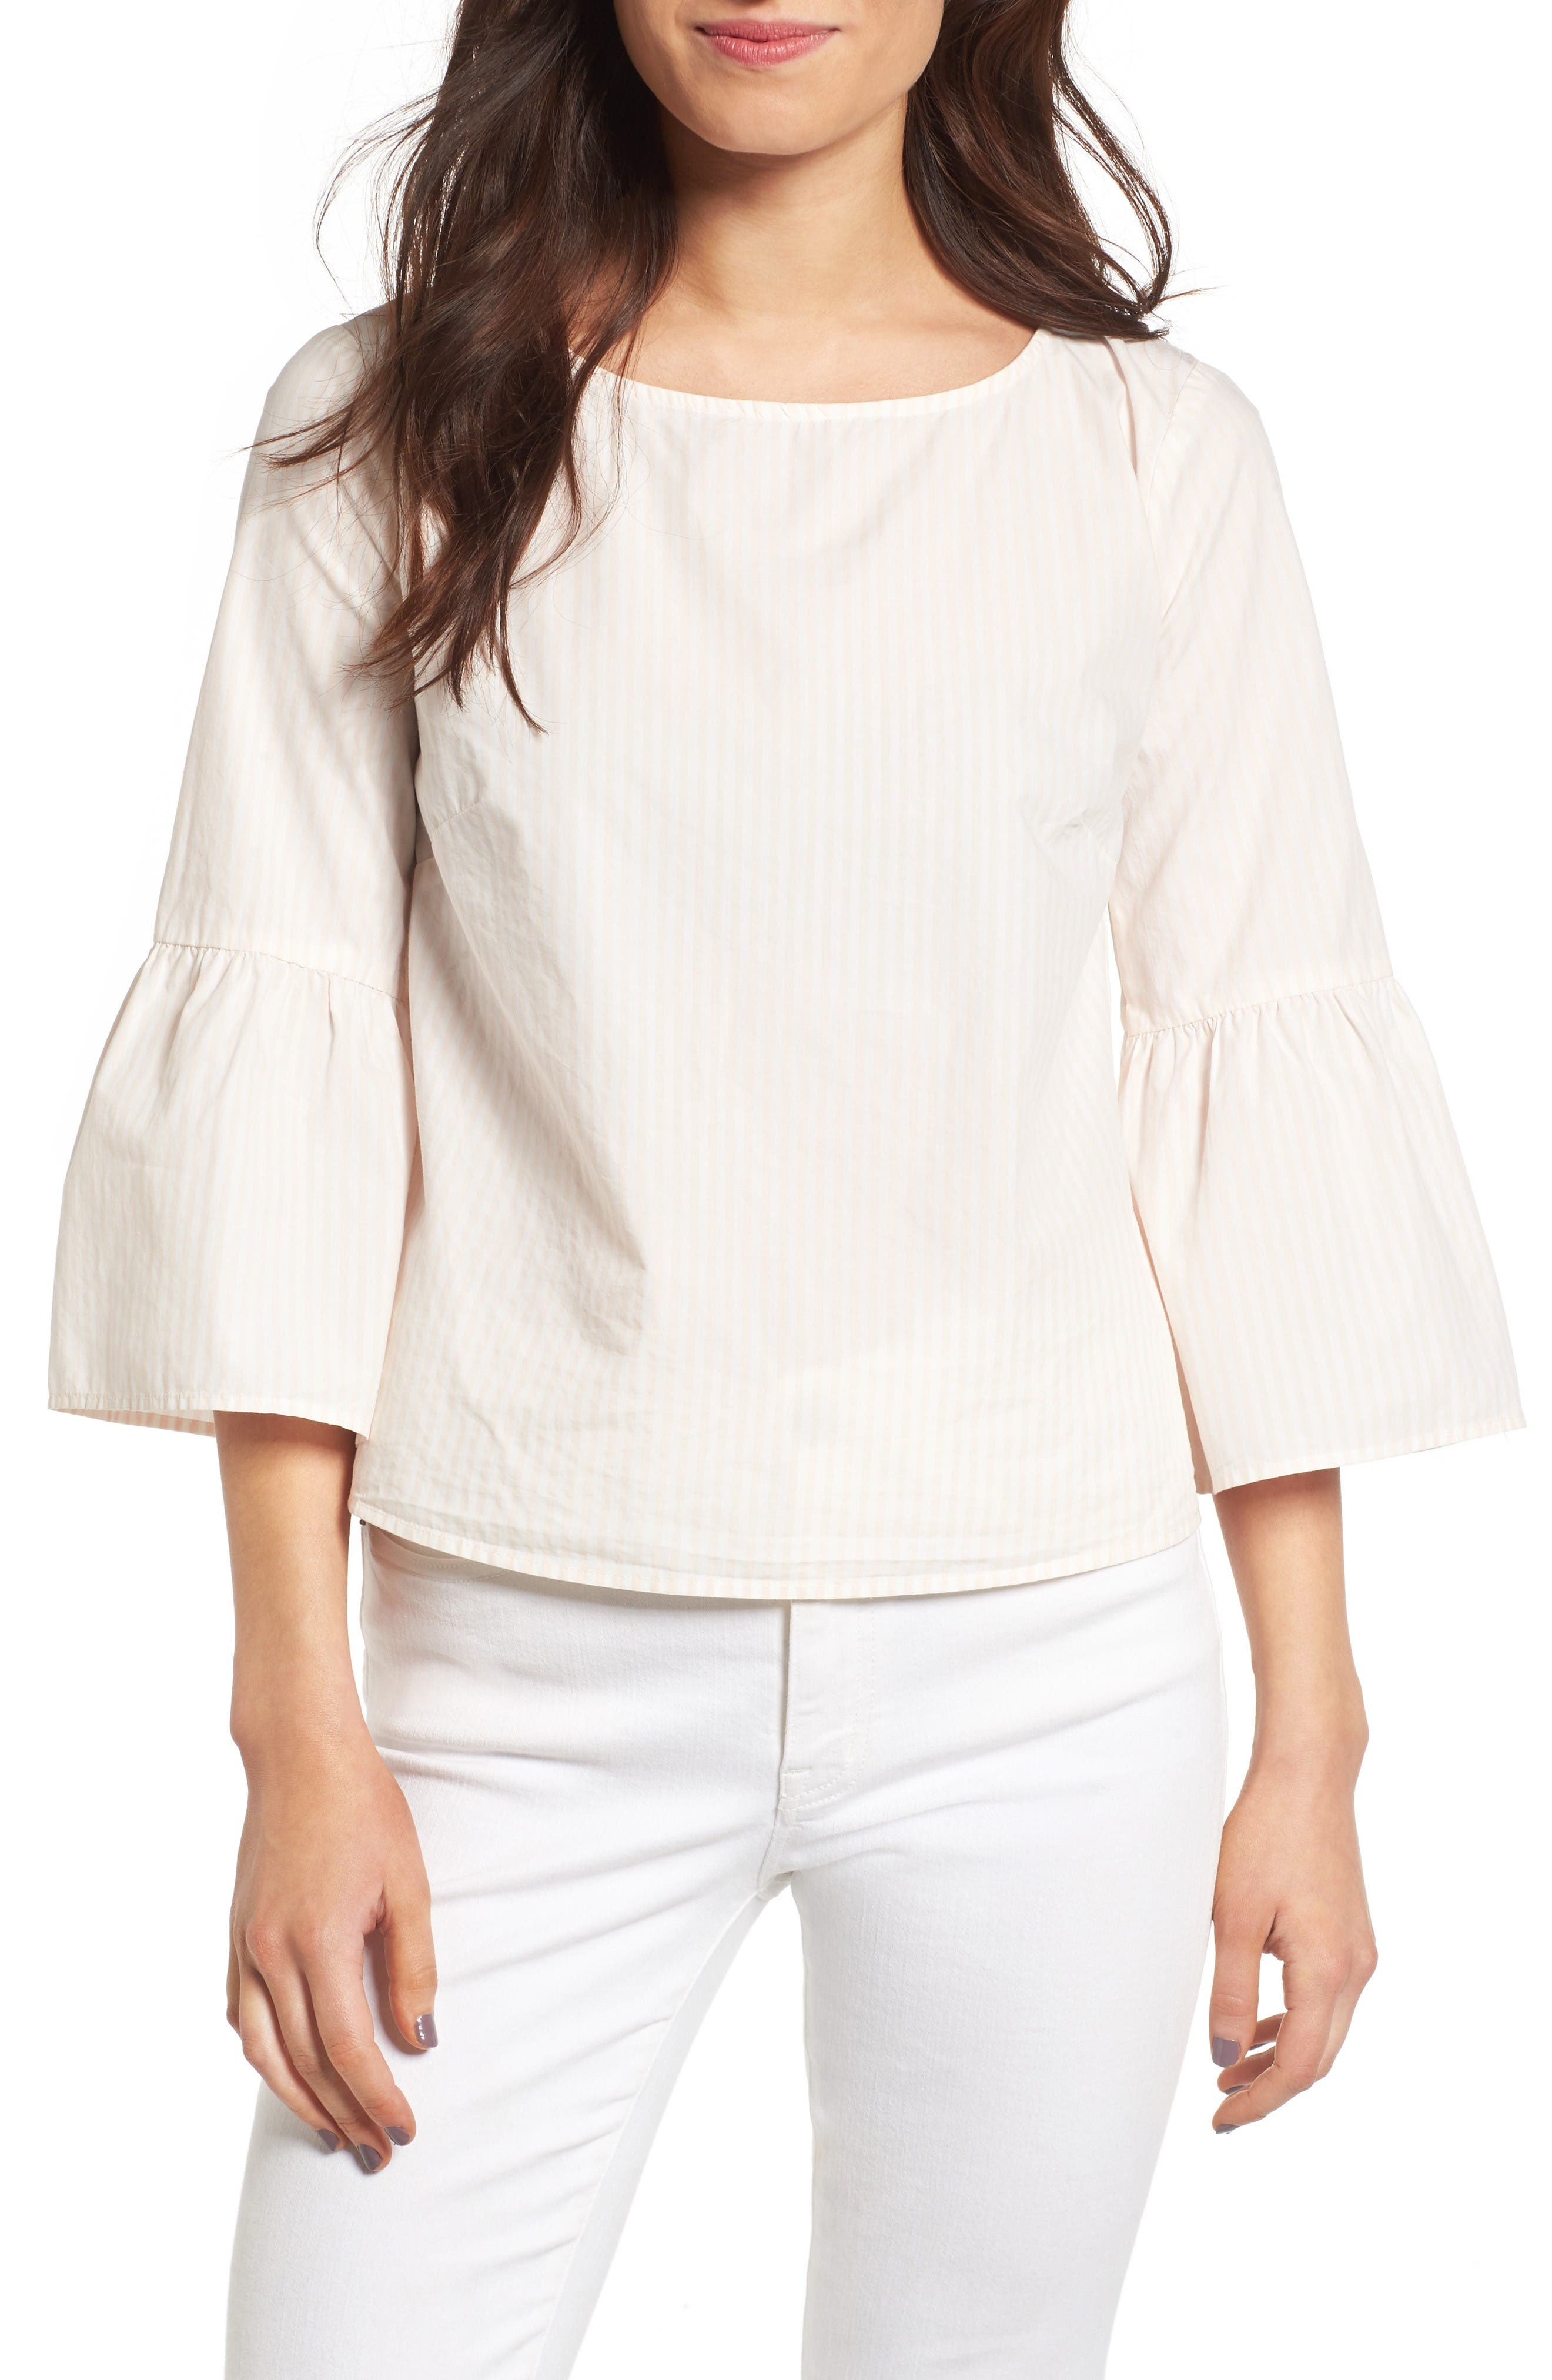 Alternate Image 1 Selected - Madewell Bell Sleeve Cotton Top